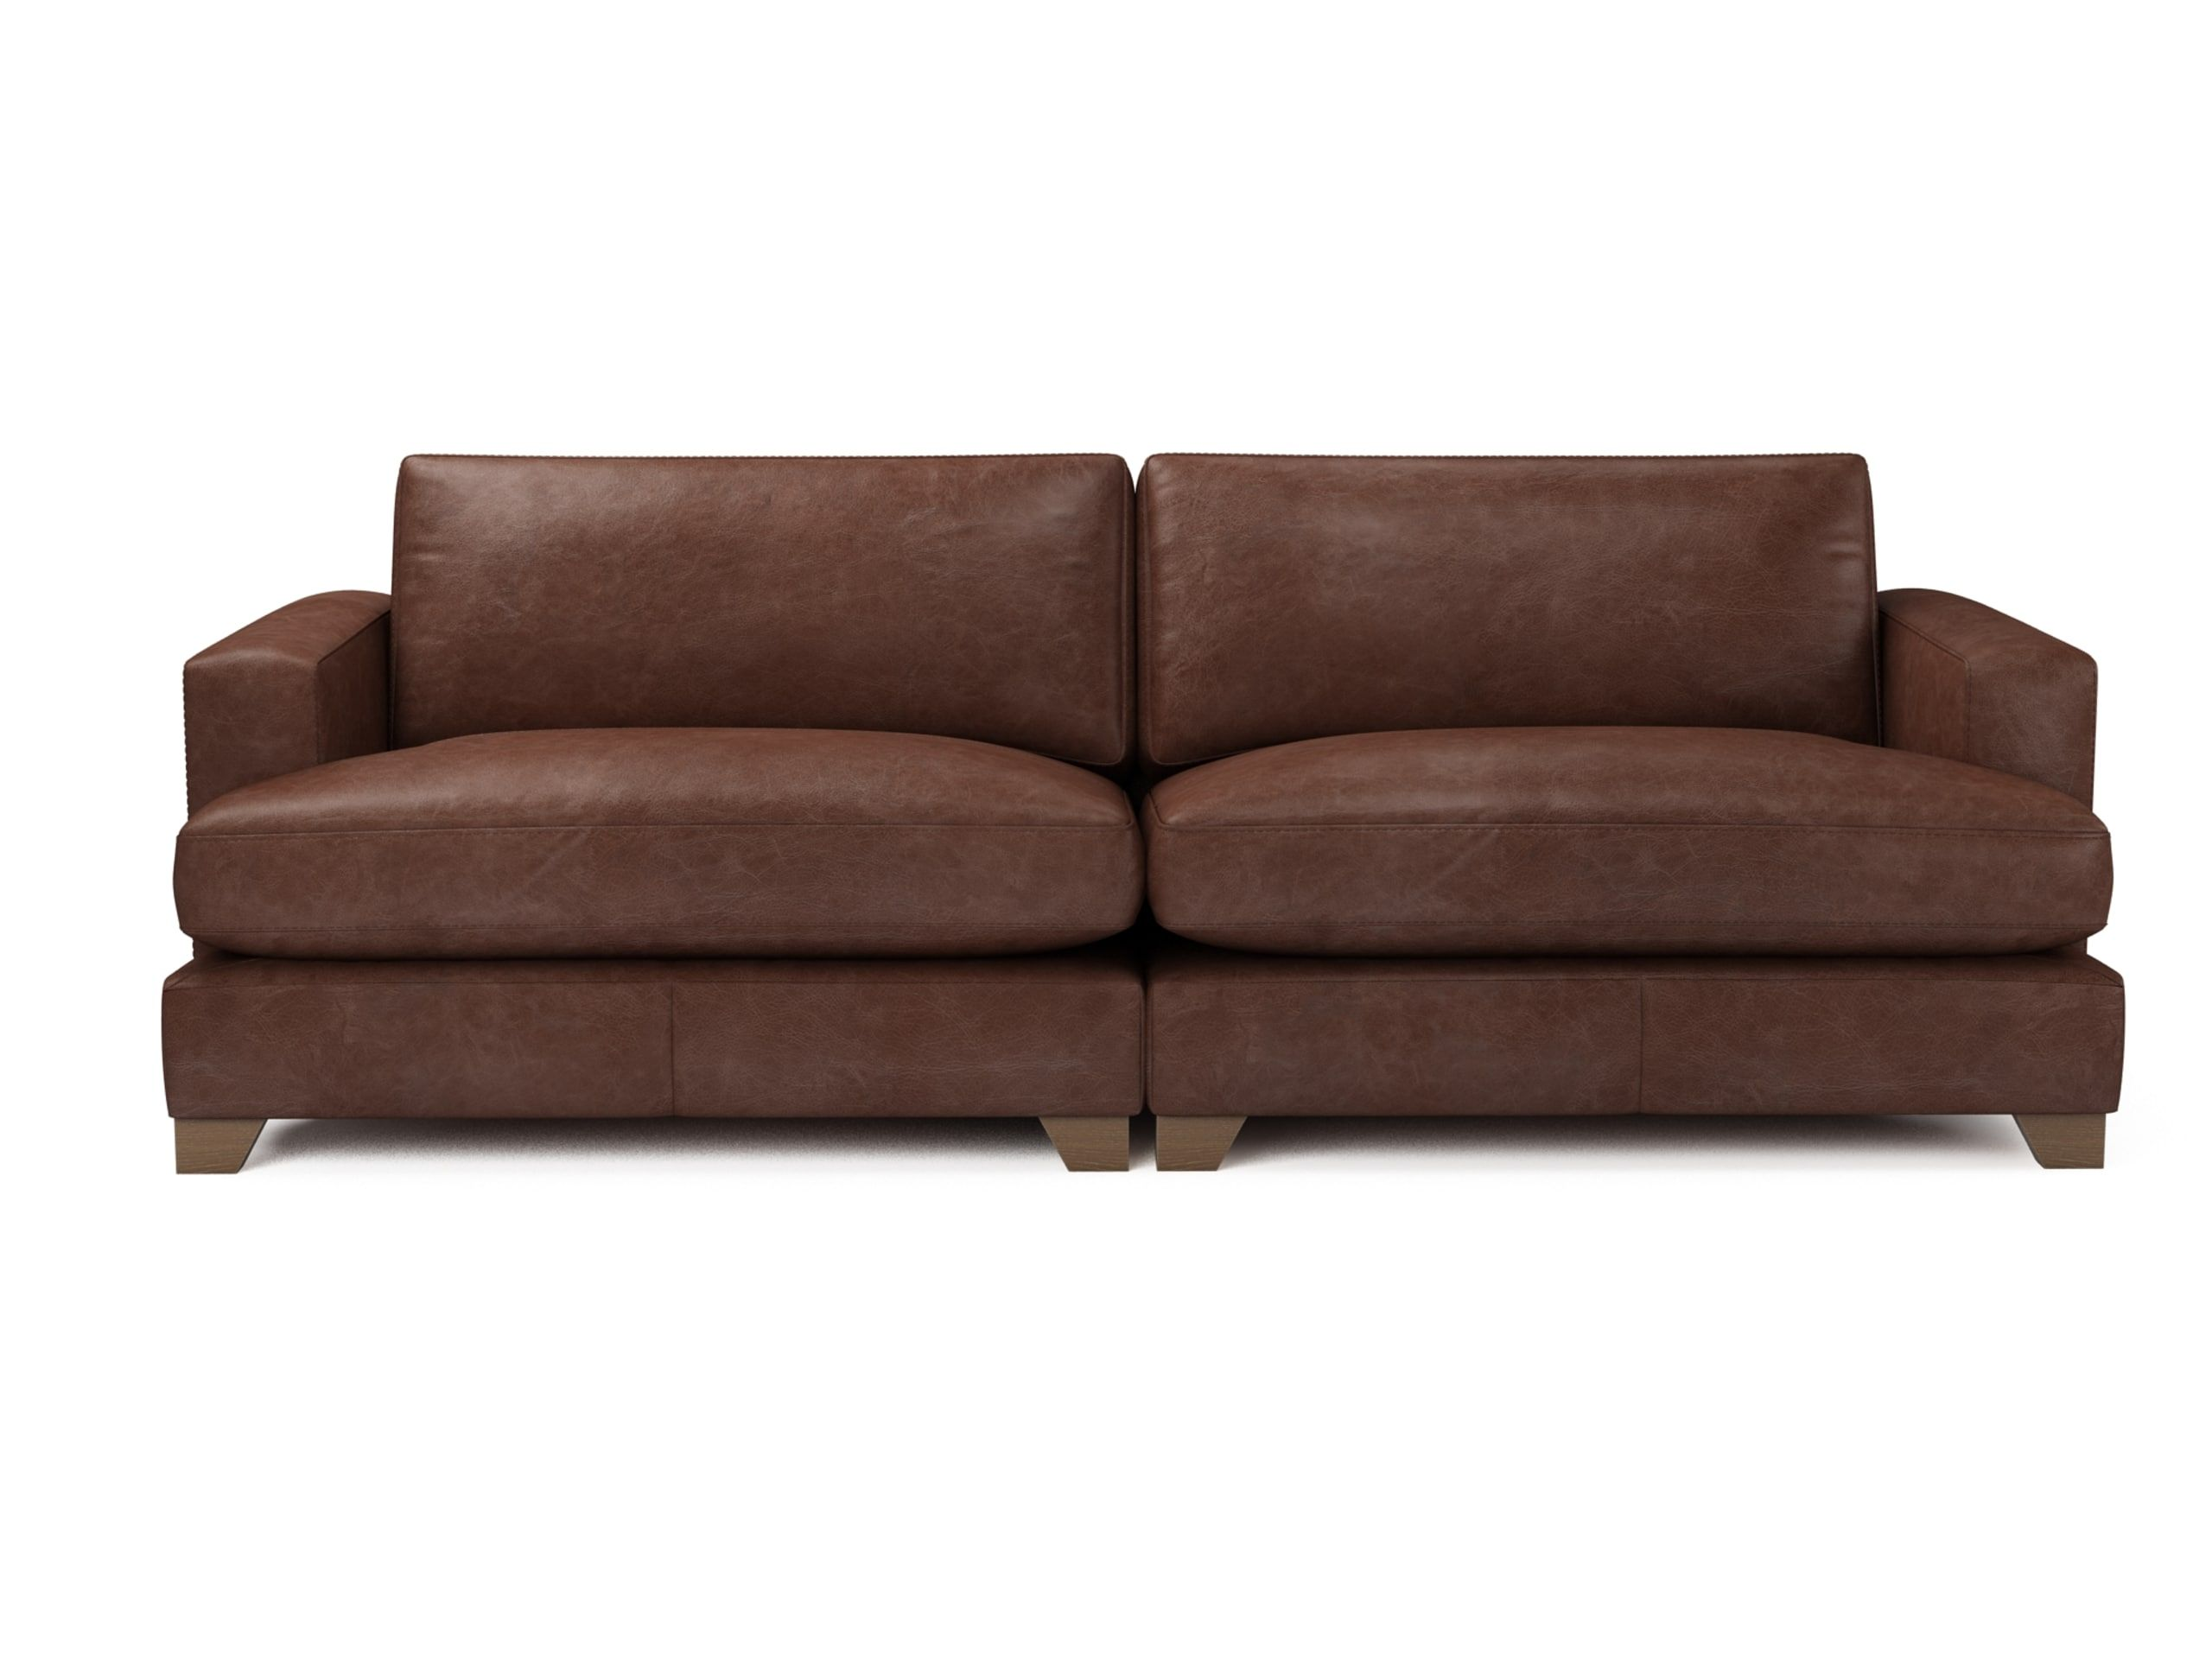 The Lounge Co. Lola 4 Seater Sofa in Distressed Leather ...